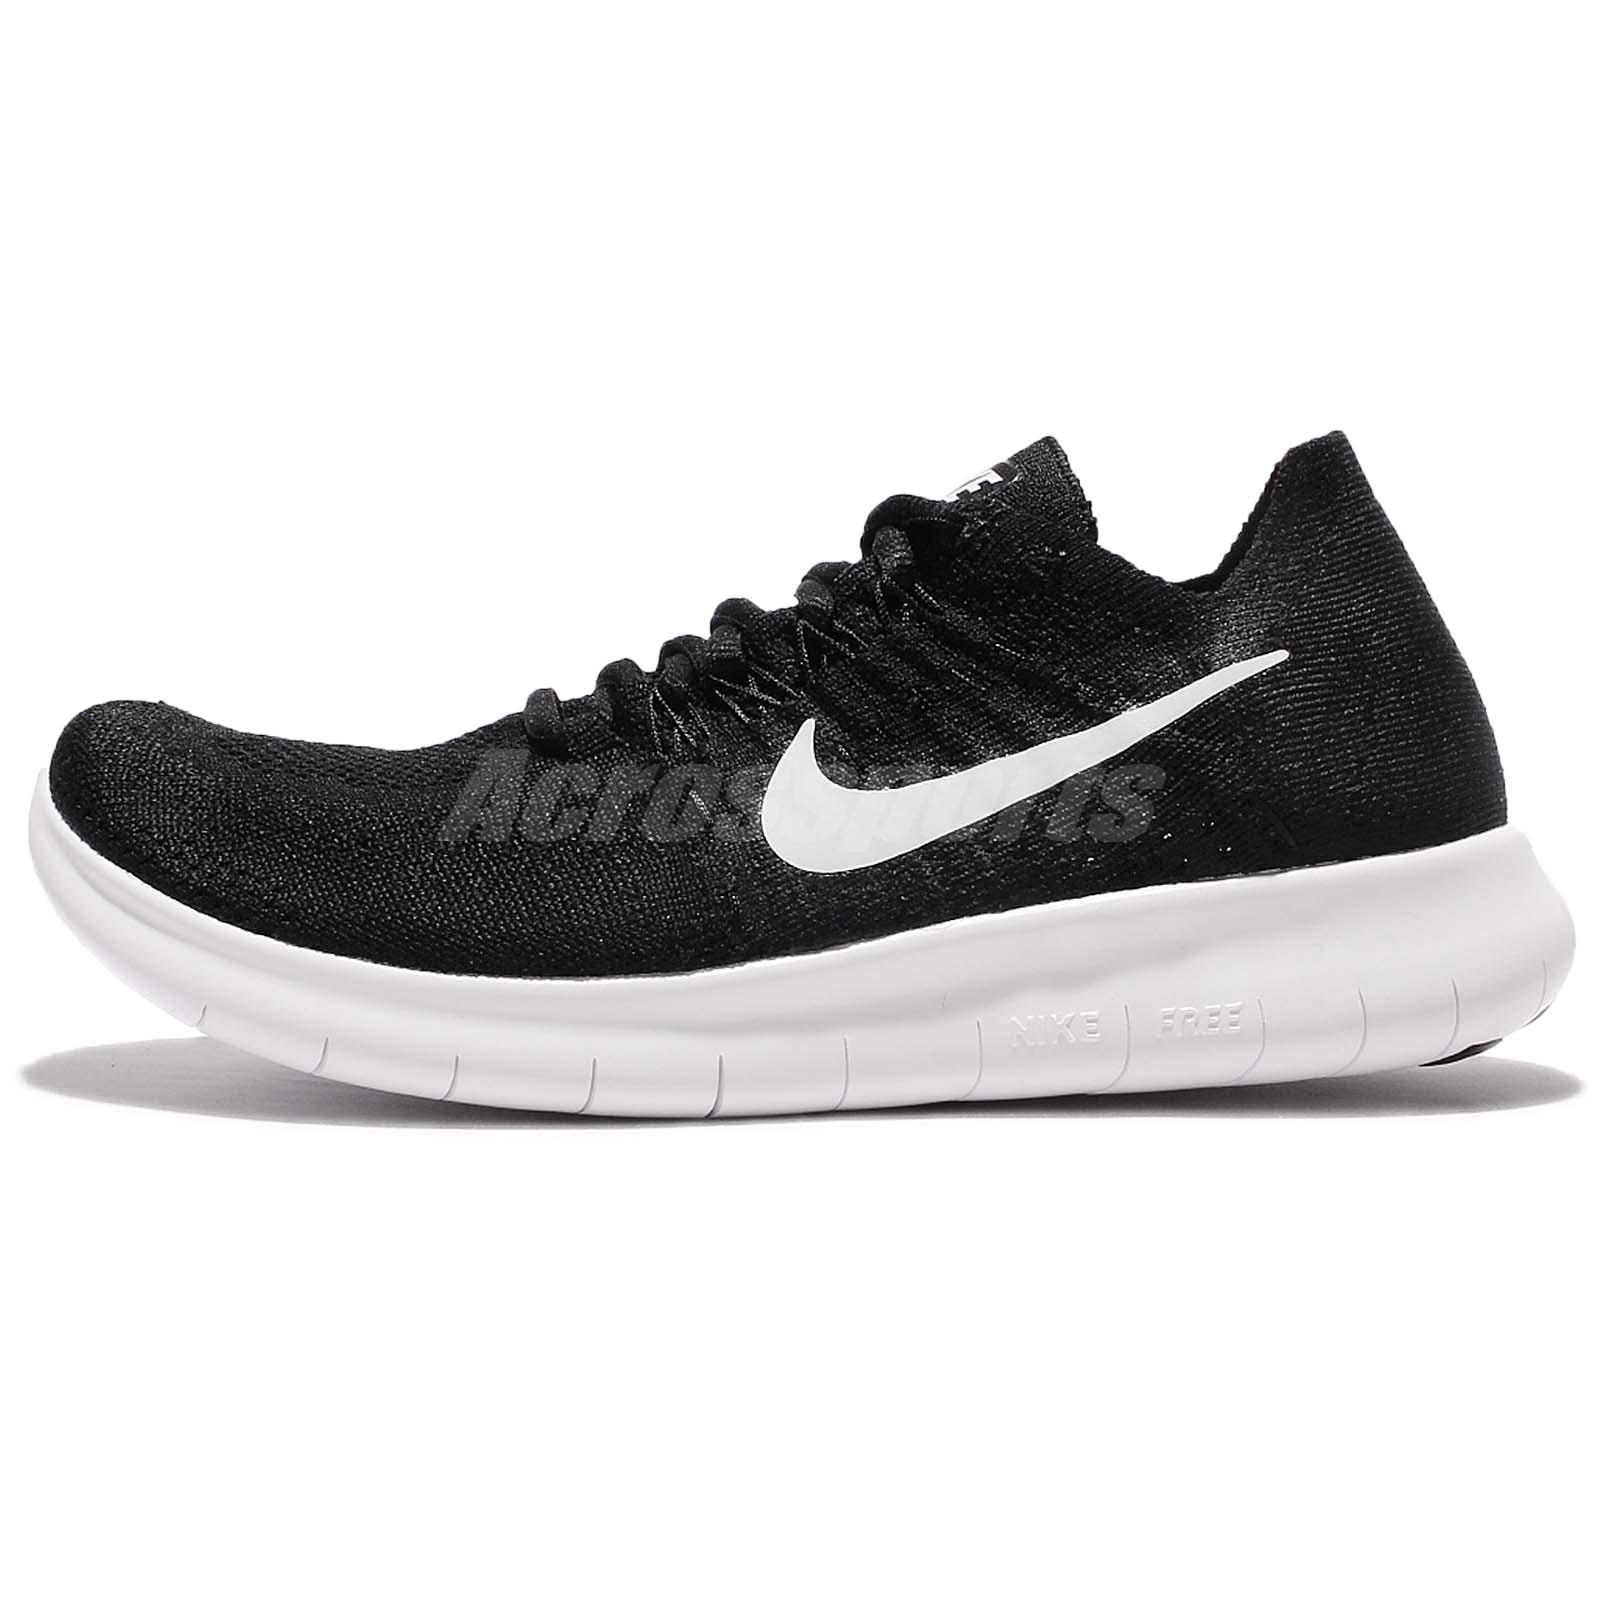 49c3182ec234 Wmns Nike Free RN Flyknit 2017 Run Black White Women Running Shoes  880844-001